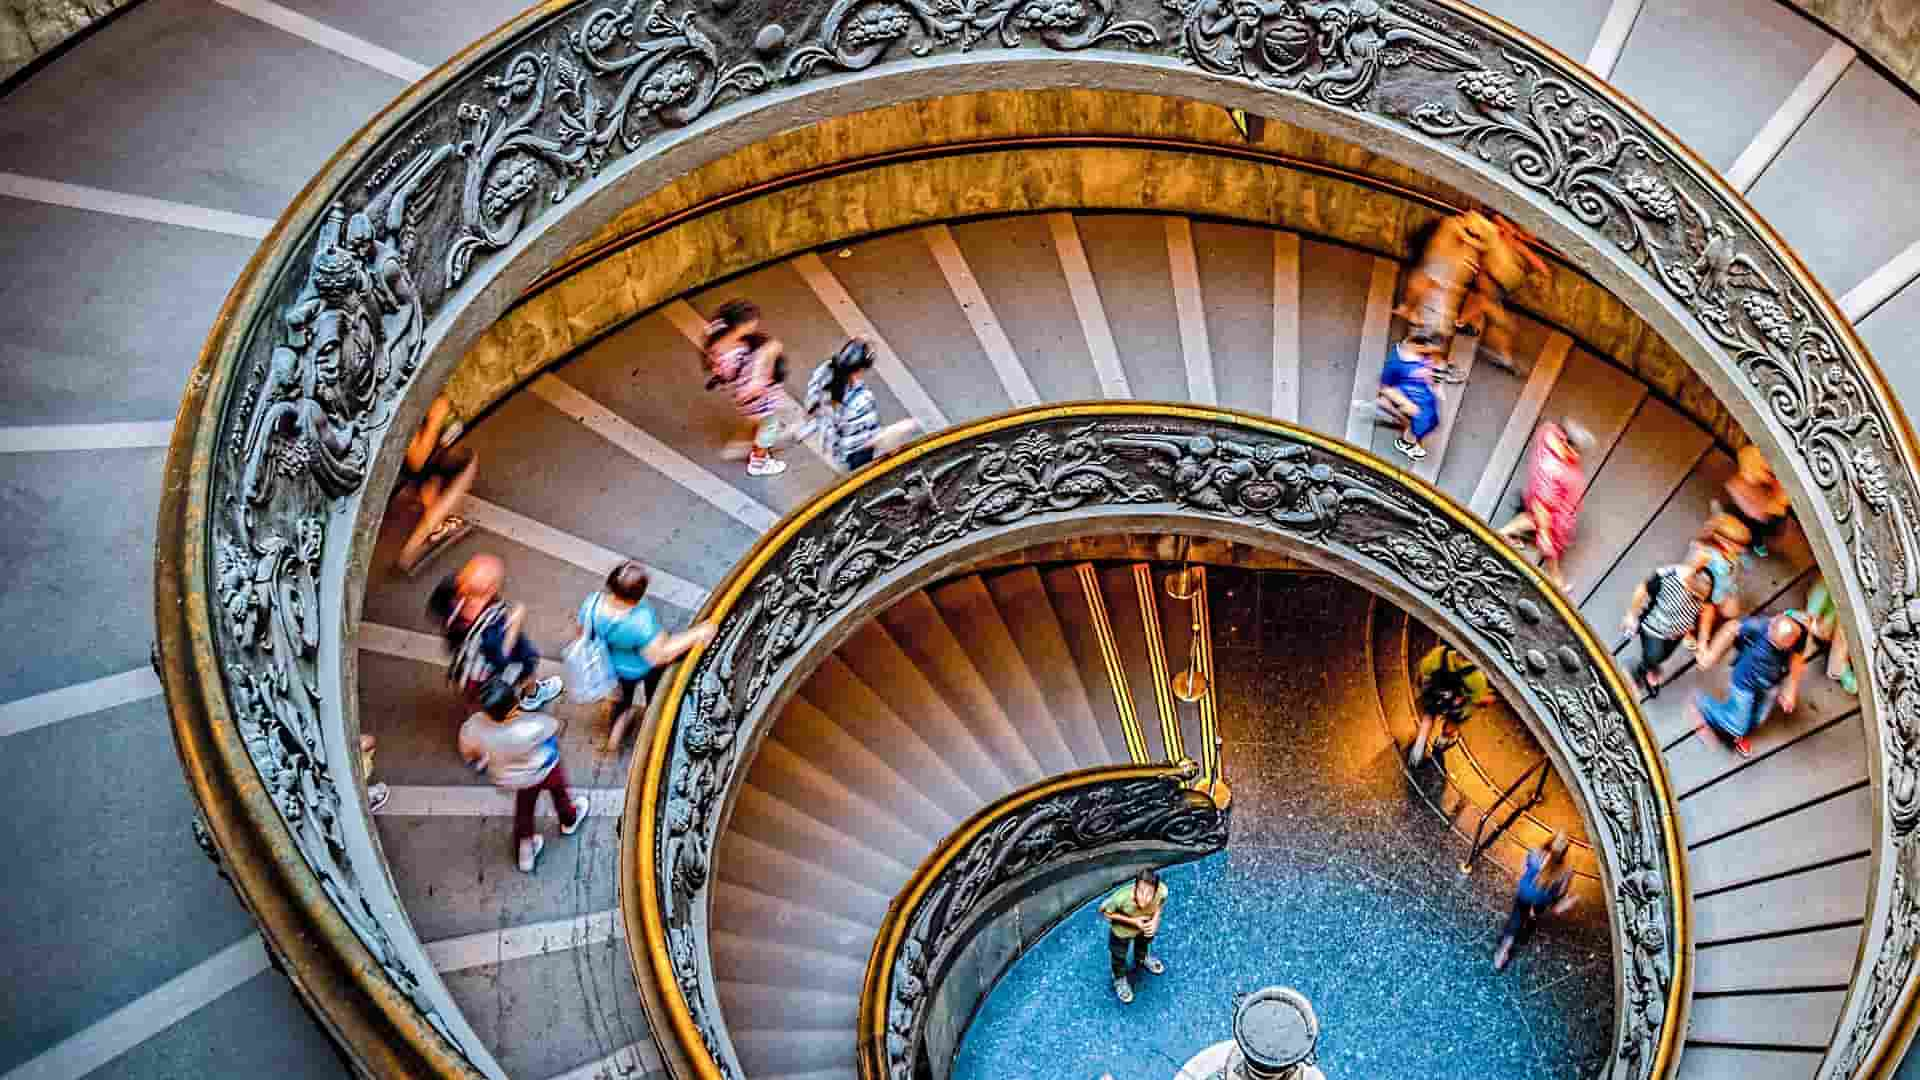 Spiral staircases at the Vatican Museums